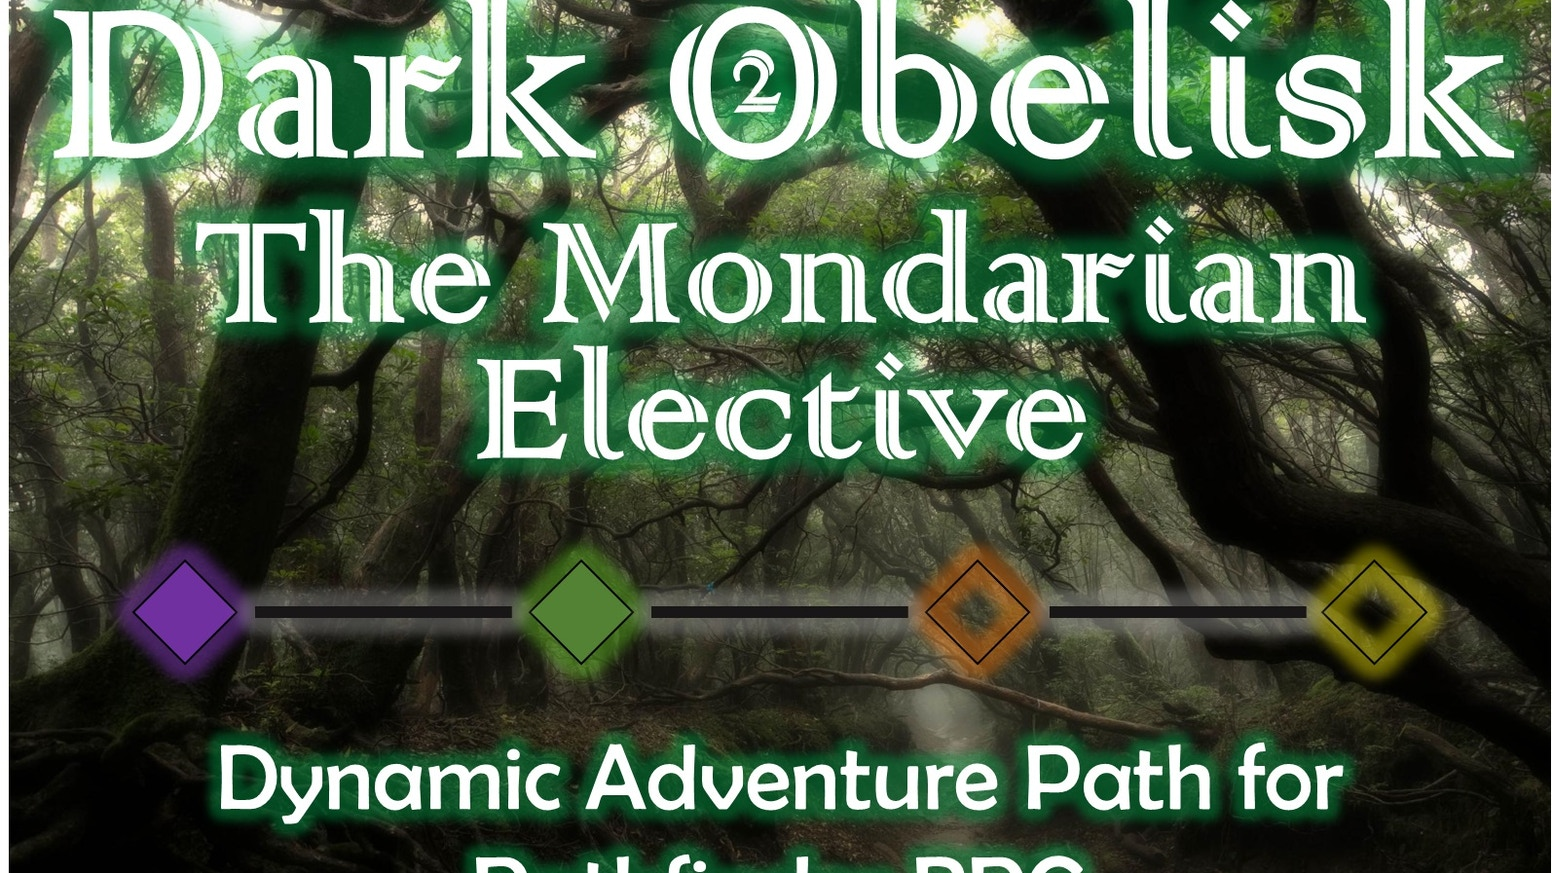 Part 2 of the Adventure Path, continuing the approach of lush with novel-caliber NPCs, dynamic plot arcs, and richly detailed maps.